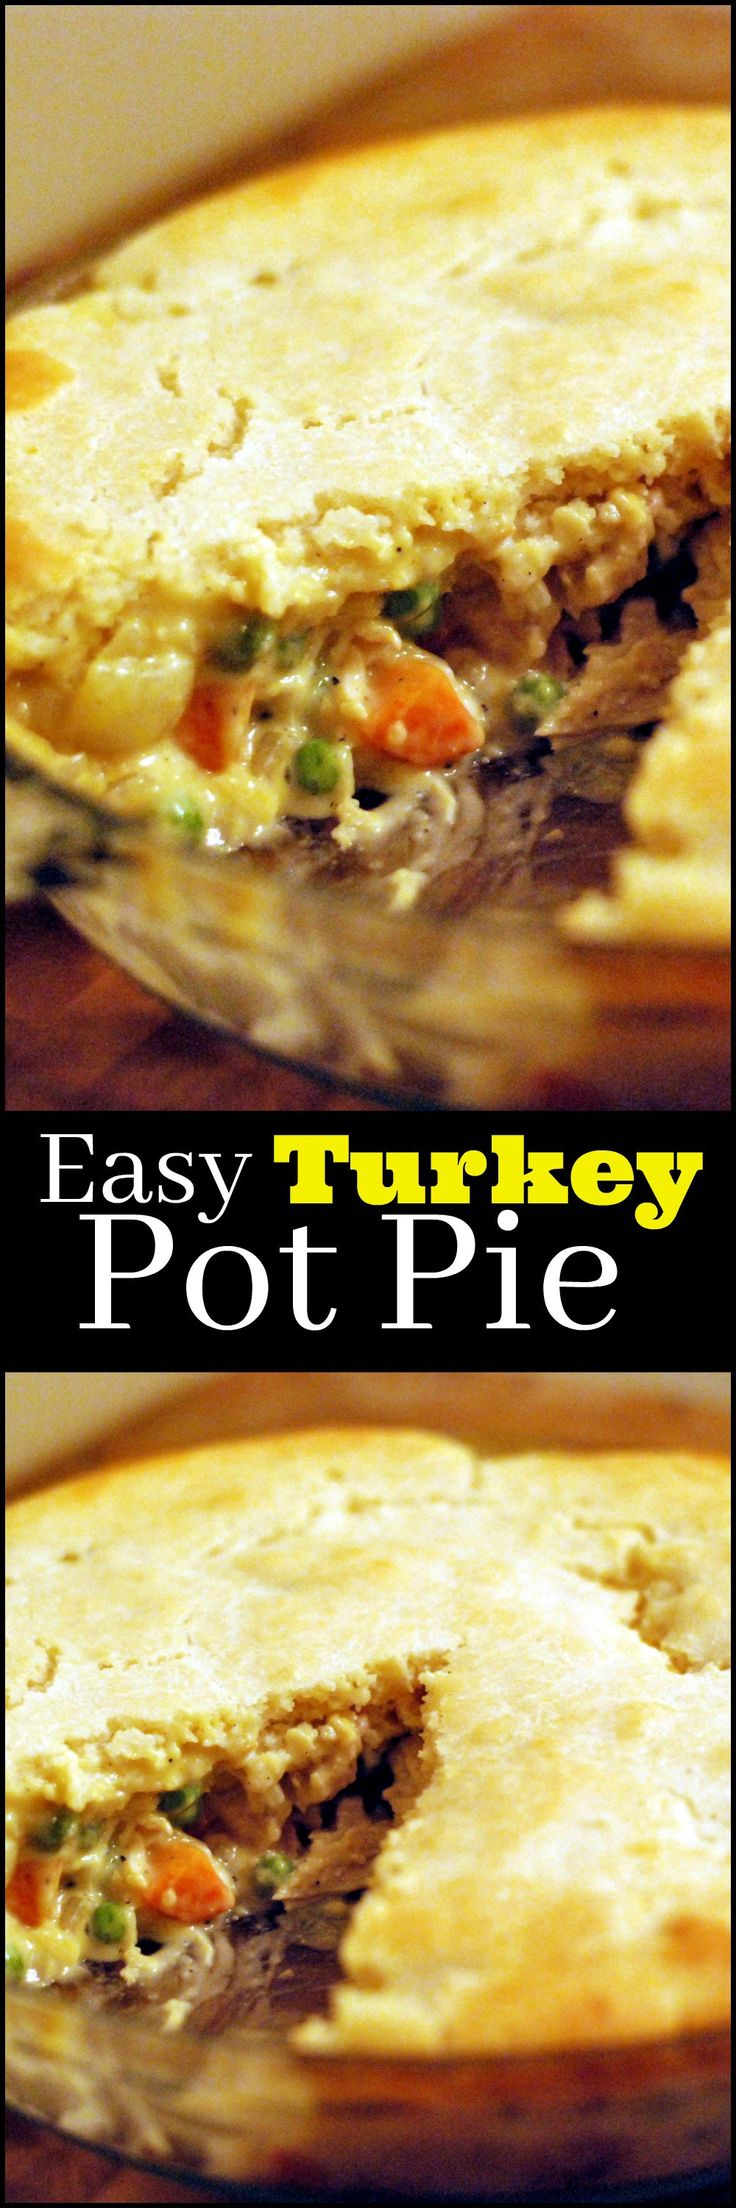 Easy Turkey Pot Pie | Aunt Bee's Recipes